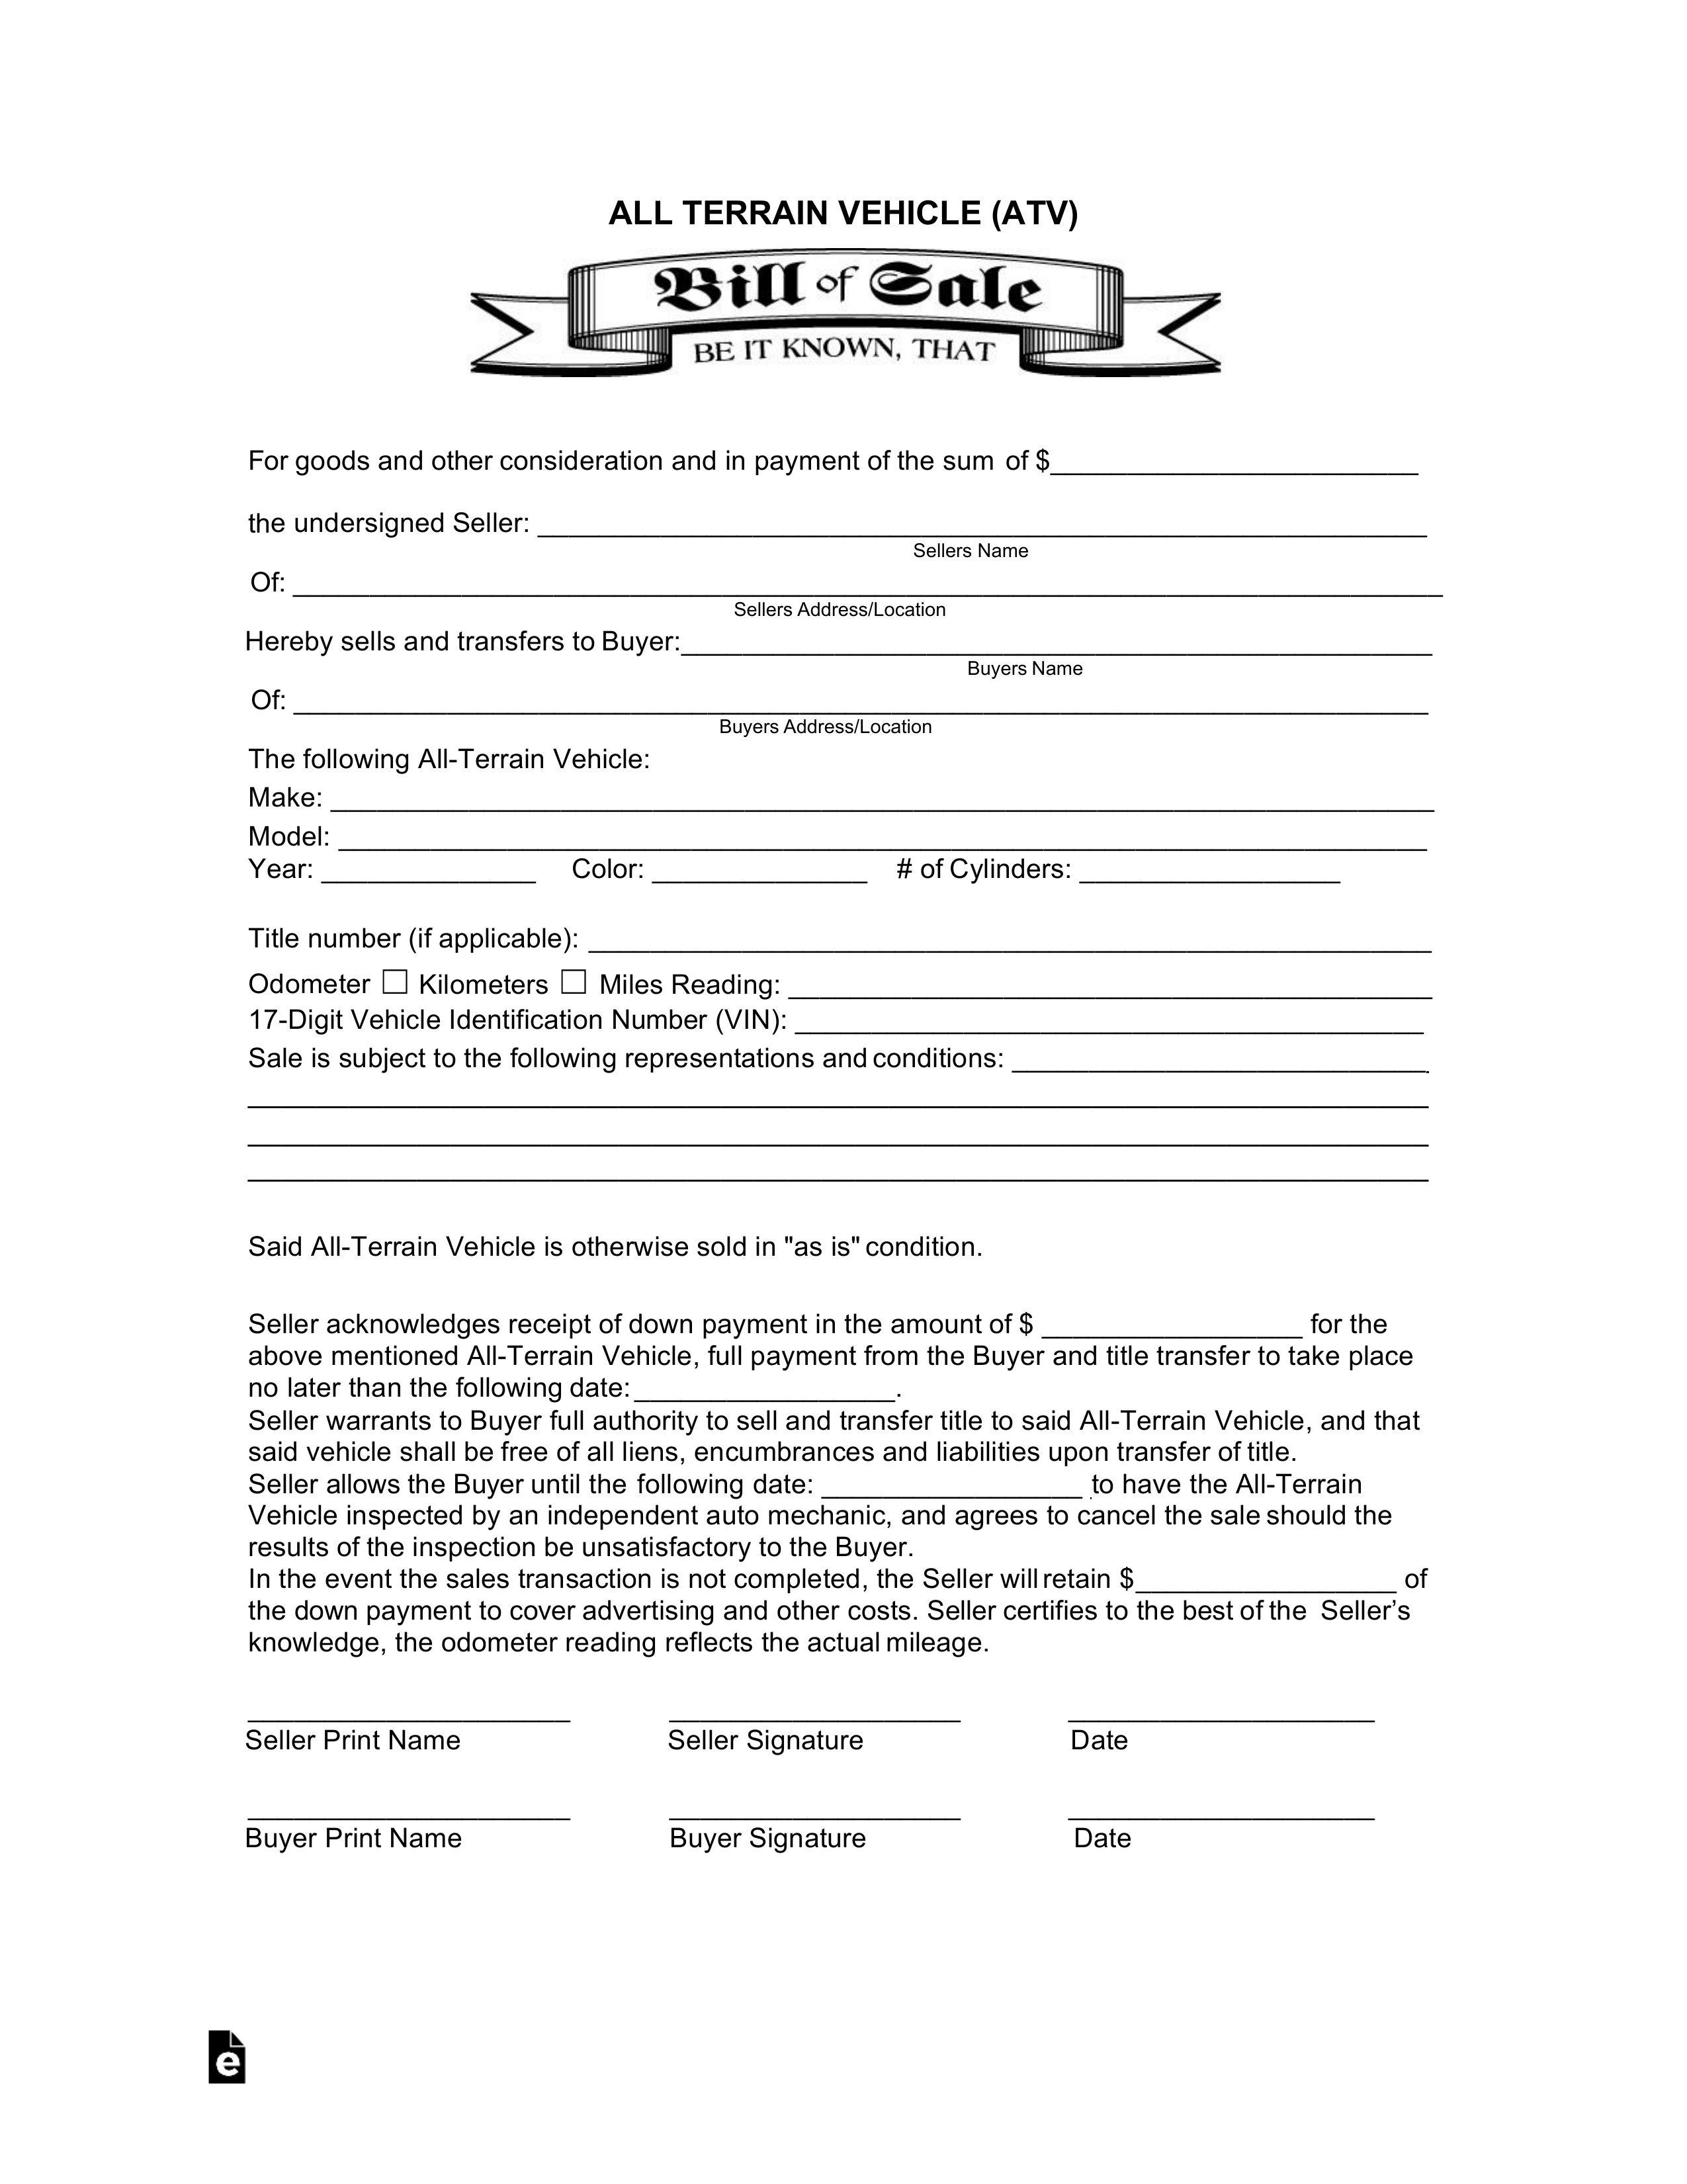 All-Terrain Vehicle (Atv) Bill Of Sale Form | Eforms – Free